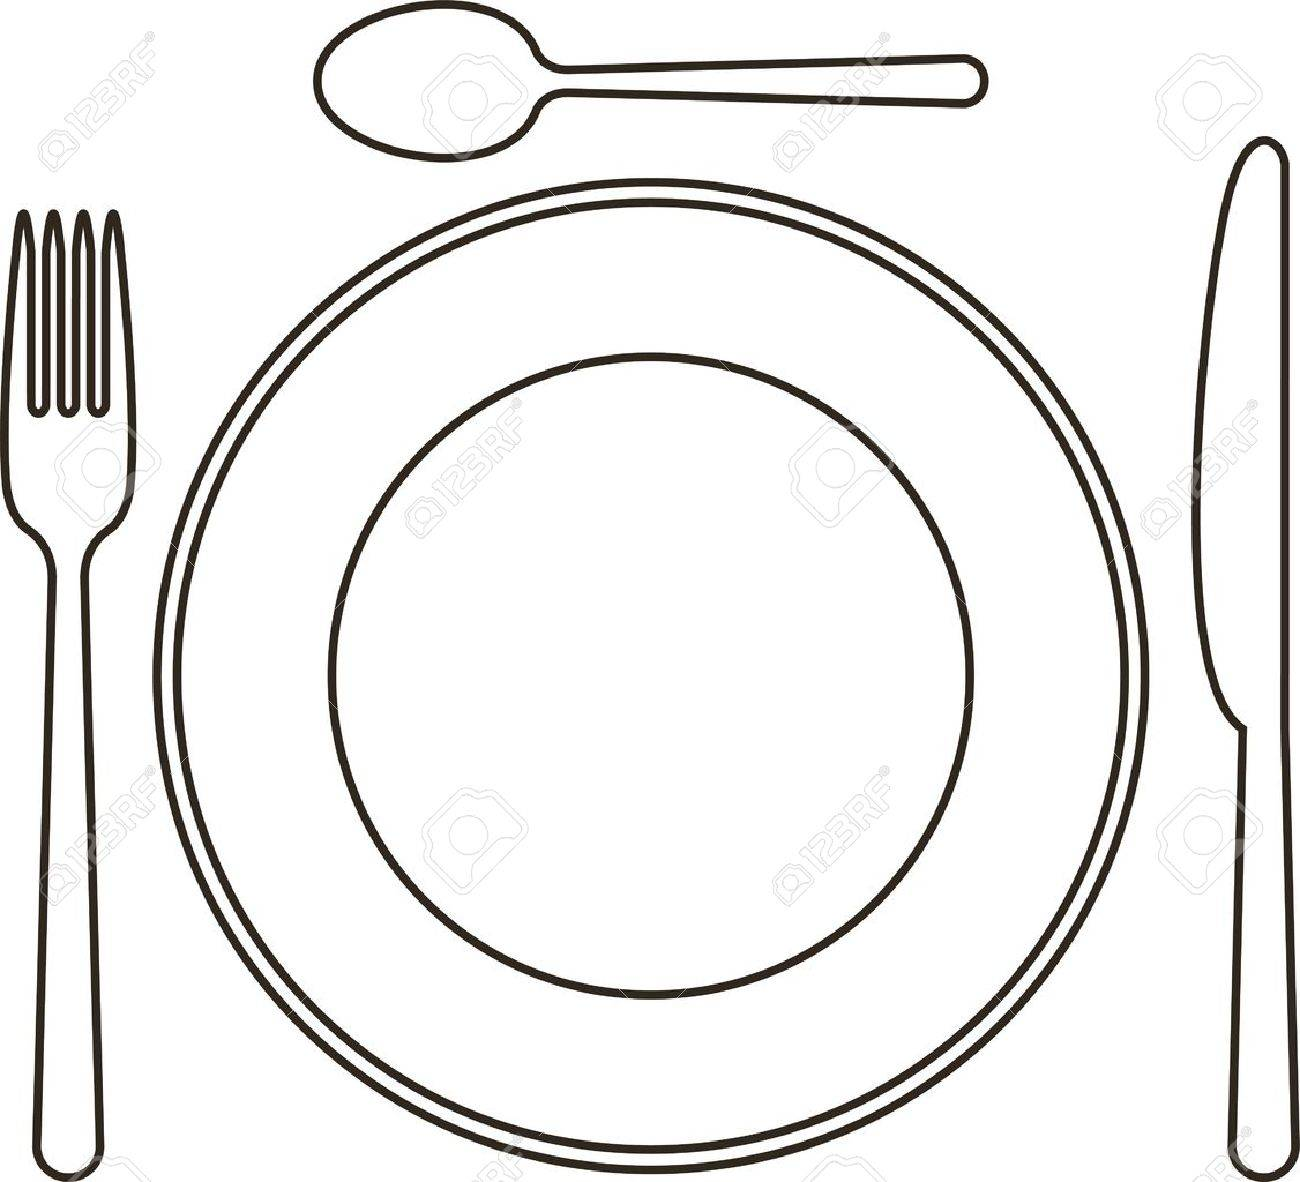 Place Setting With Plate, Knife, Spoon And Fork Royalty Free ...